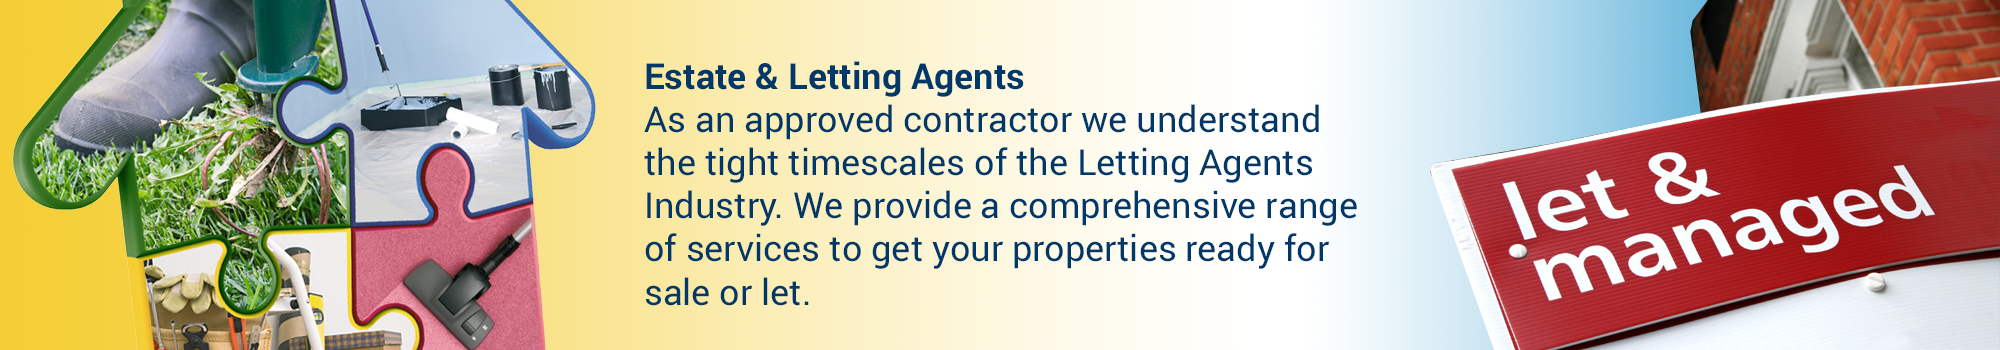 Estate and Letting Agents